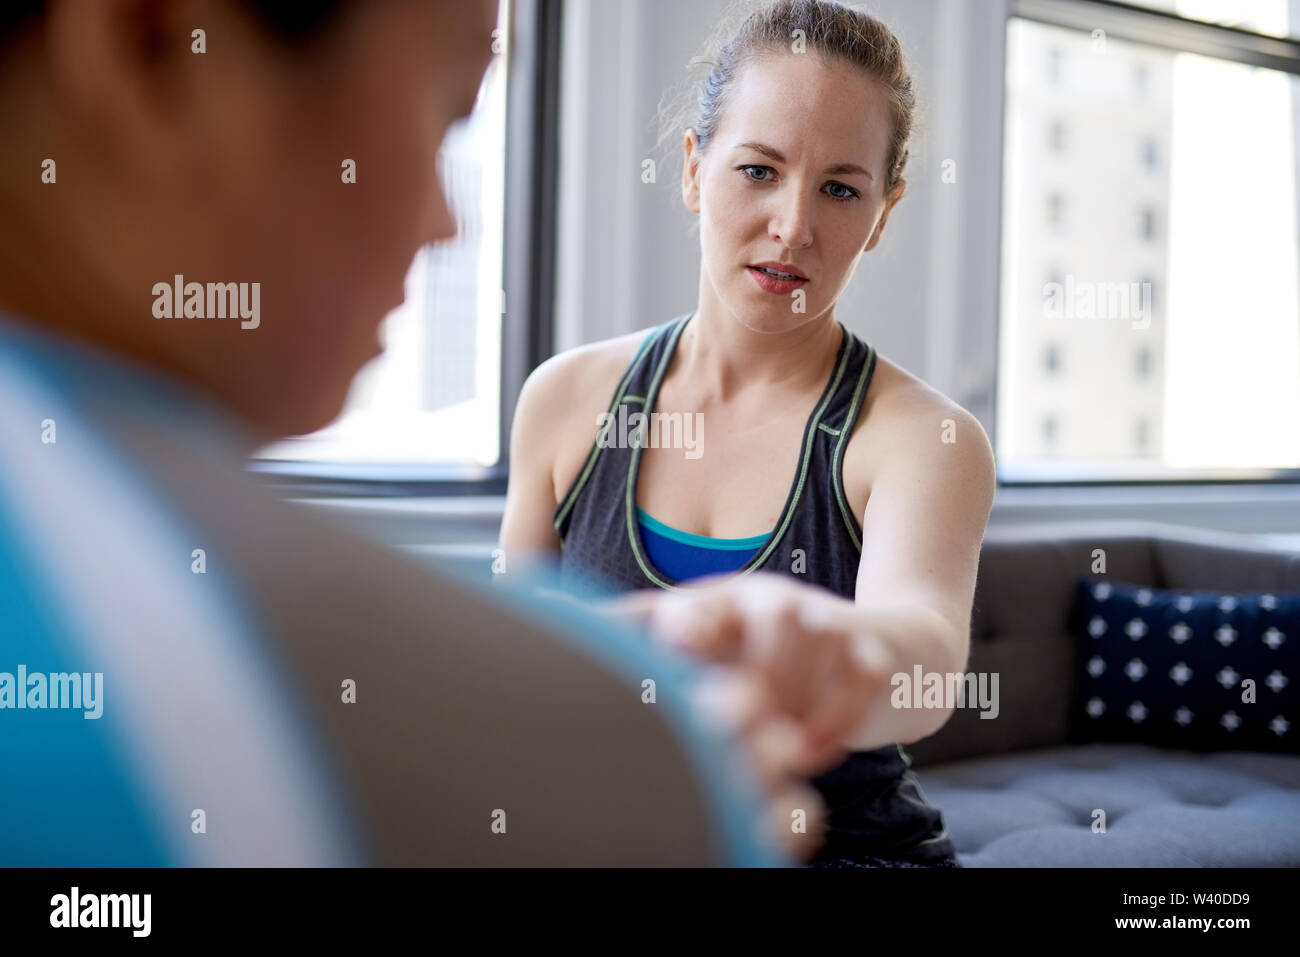 Caucasian woman physiotherapist talking to a mid-adult chinese female patient and taking notes on a tablet during a fitness evaluation consultation - Stock Image